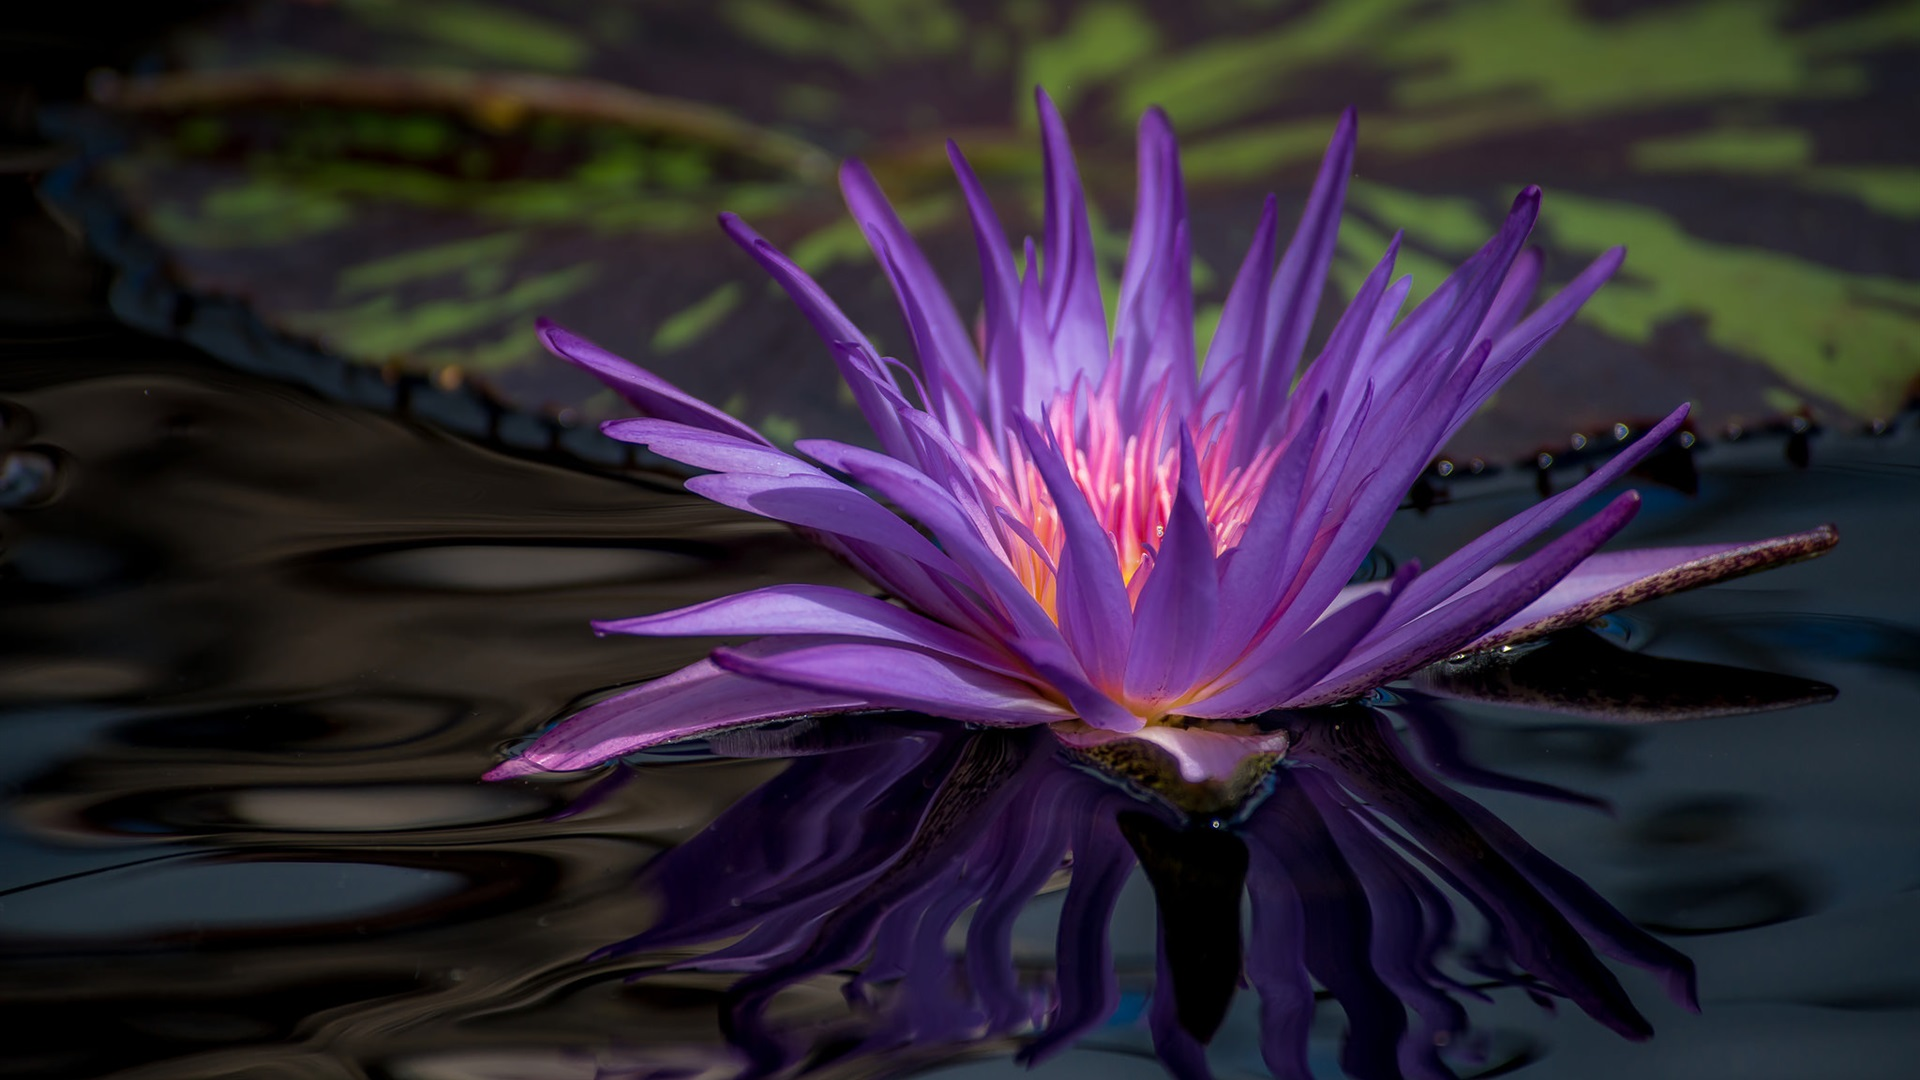 Wallpaper Purple Water Lily Flower In Pond 1920x1440 Hd Picture Image